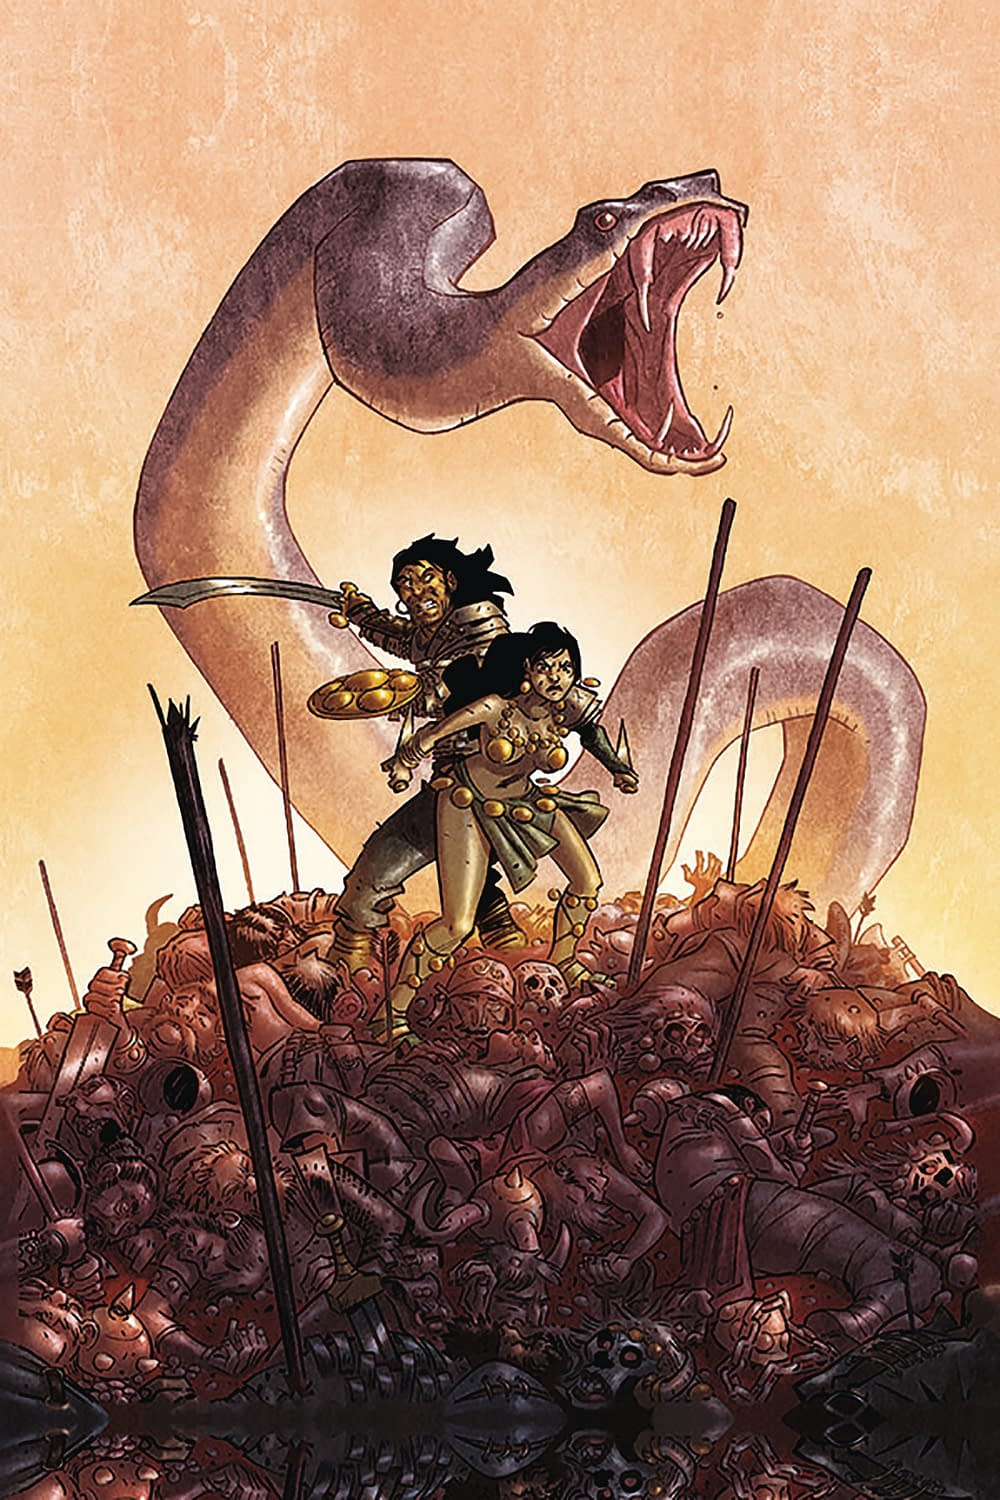 Ablaze Brings Glenat's Uncensored, Violent, Sexual Conan Comics to U.S. in October